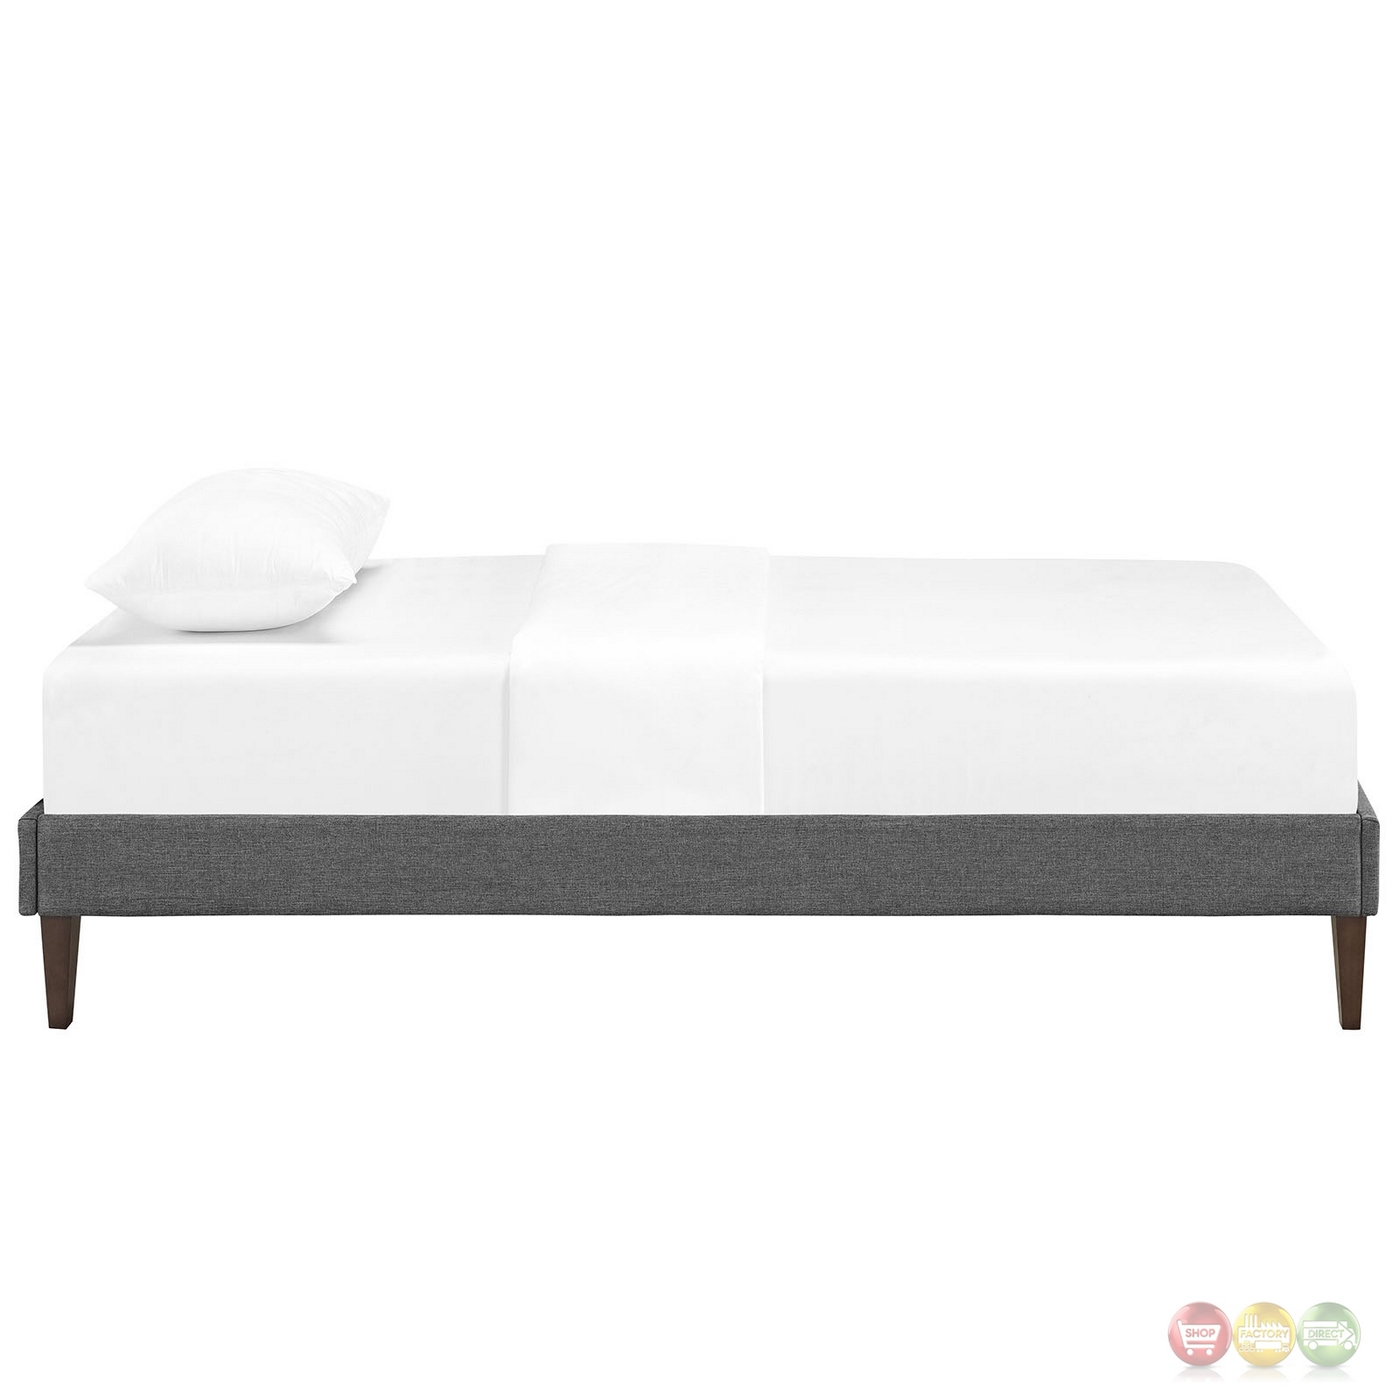 sharon modern twin fabric platform bed frame with square legs gray